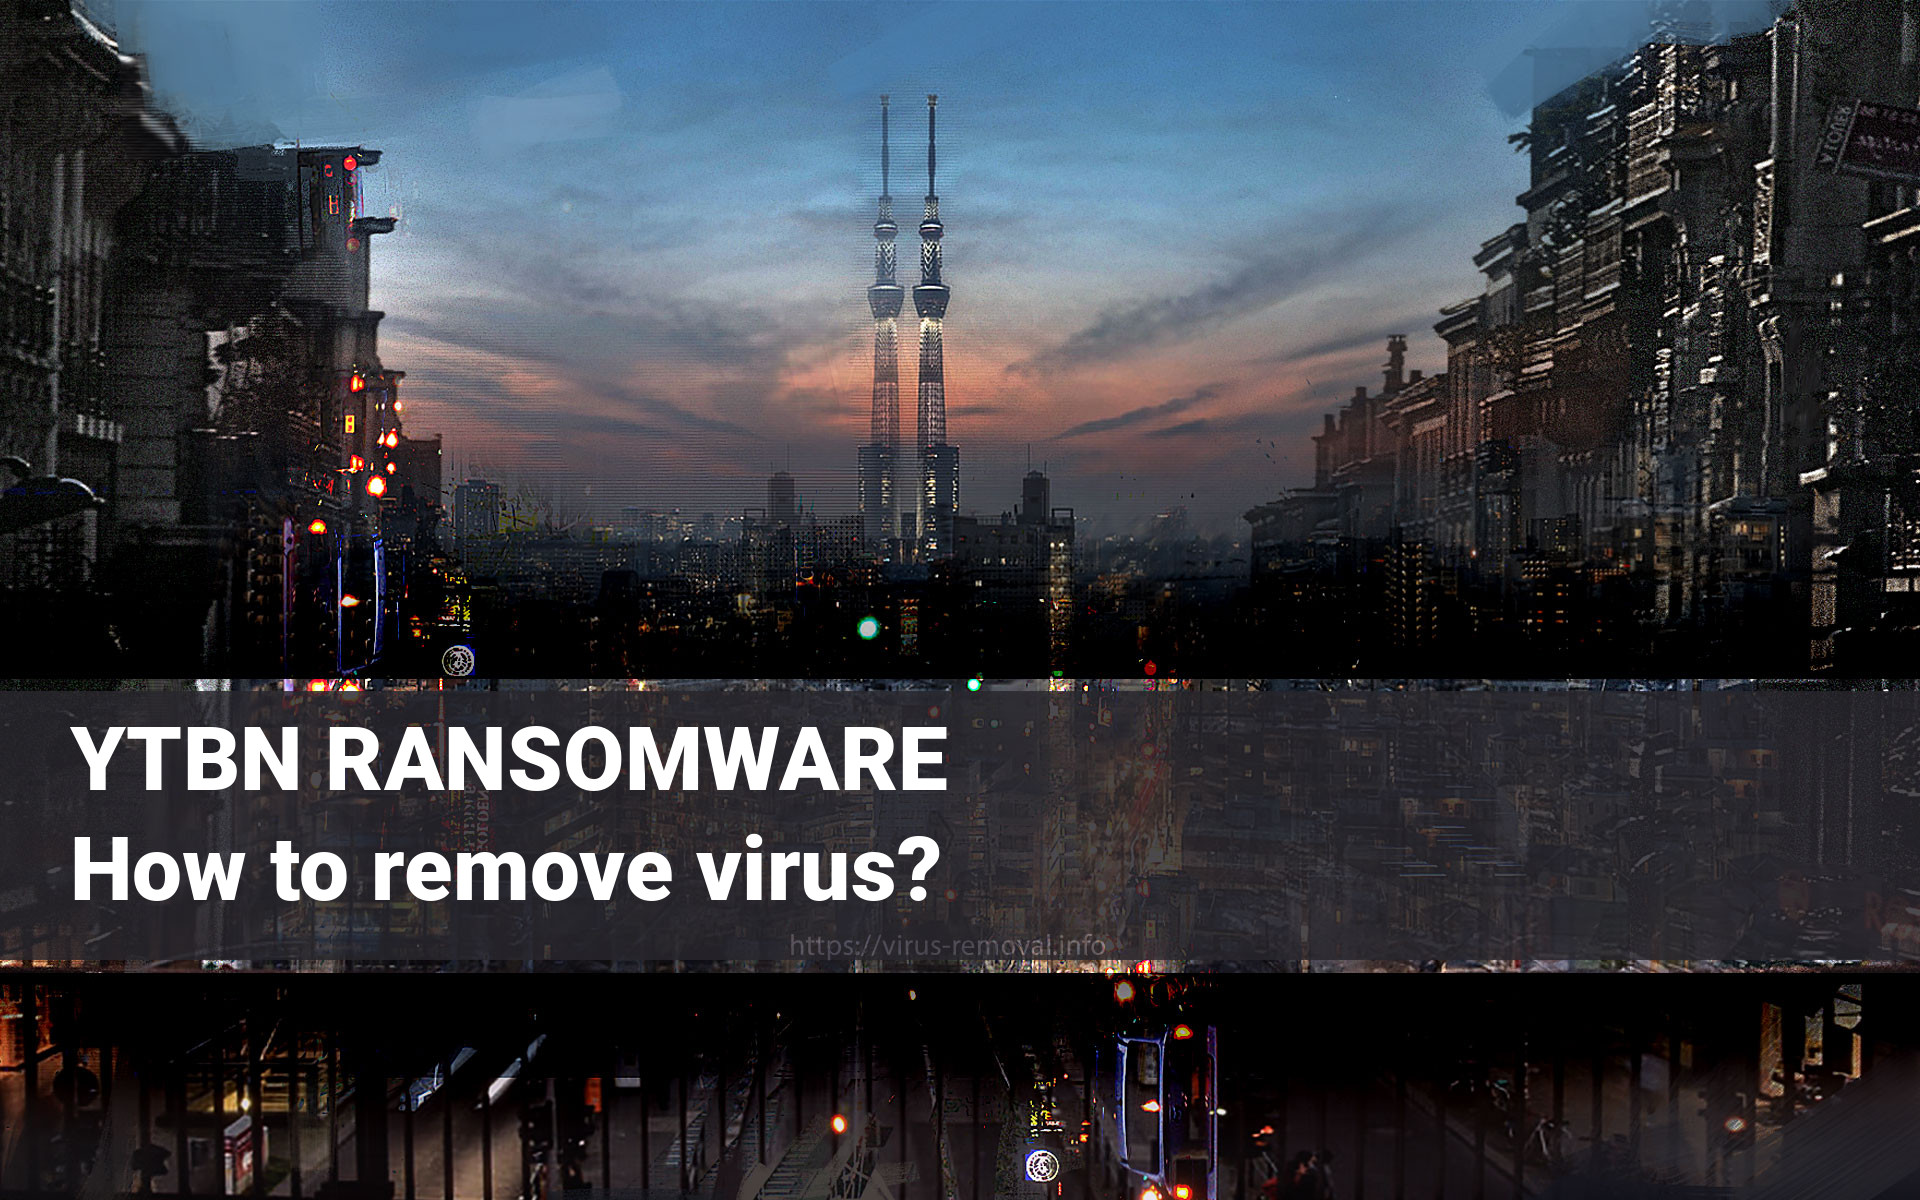 ytbn ransomware